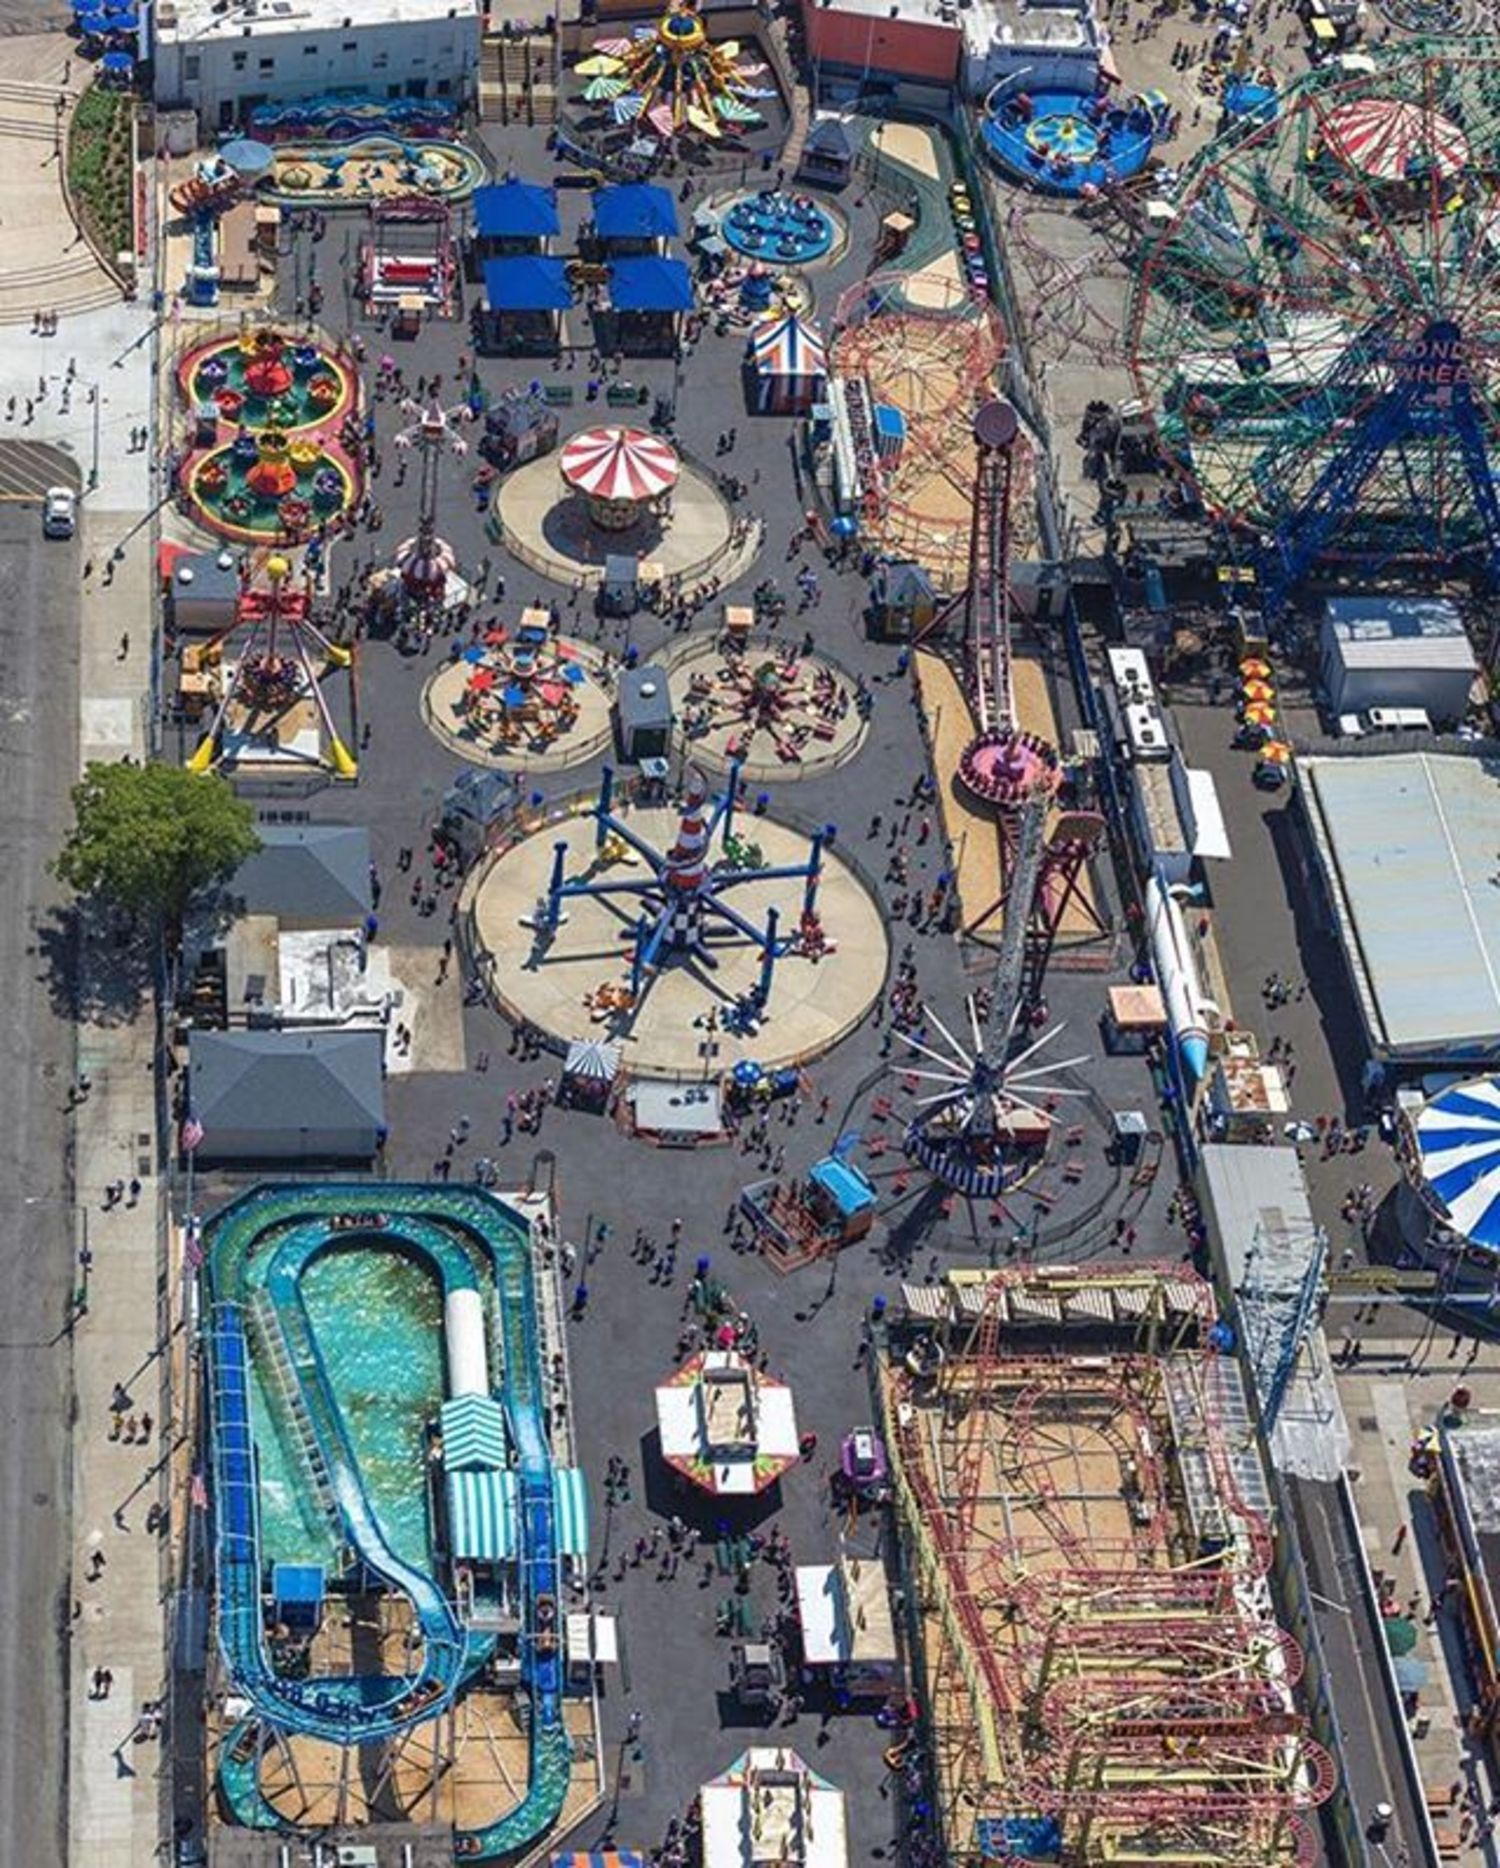 Coney Island, New York. Photo via @flynyon #viewingnyc